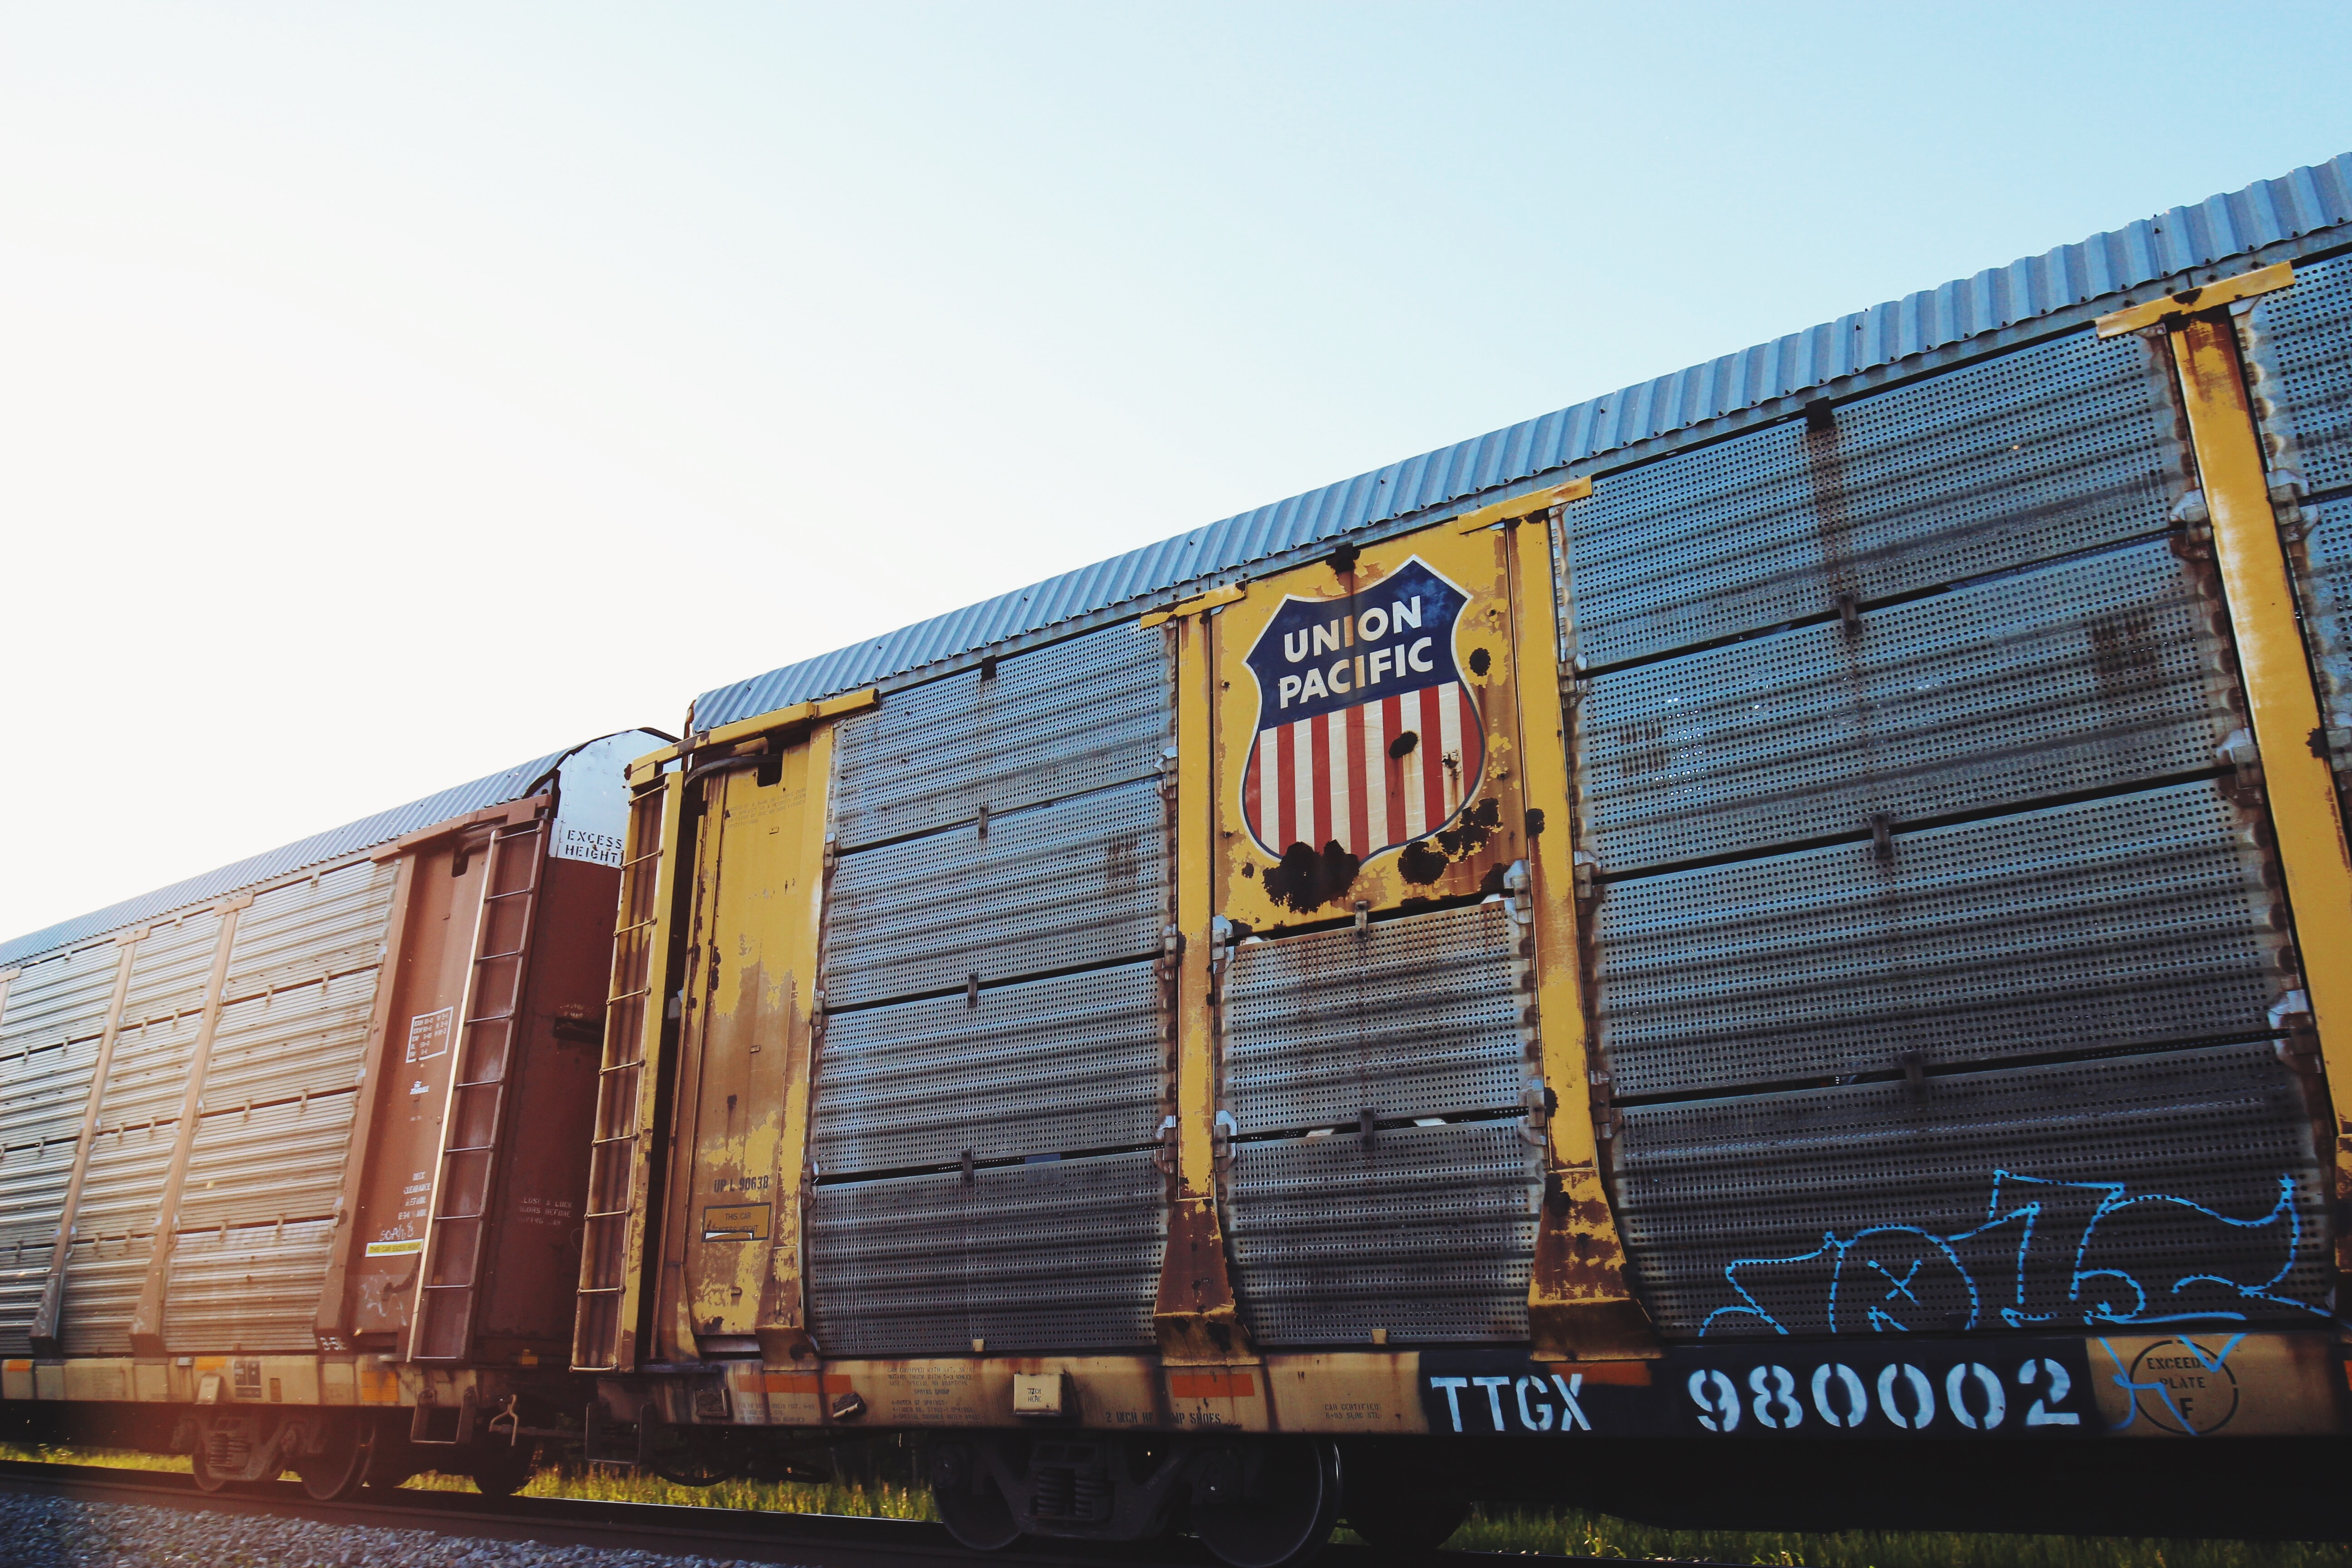 An old rusting Union Pacific railcar with blue graffiti on it passing a grassy area under a clear sky